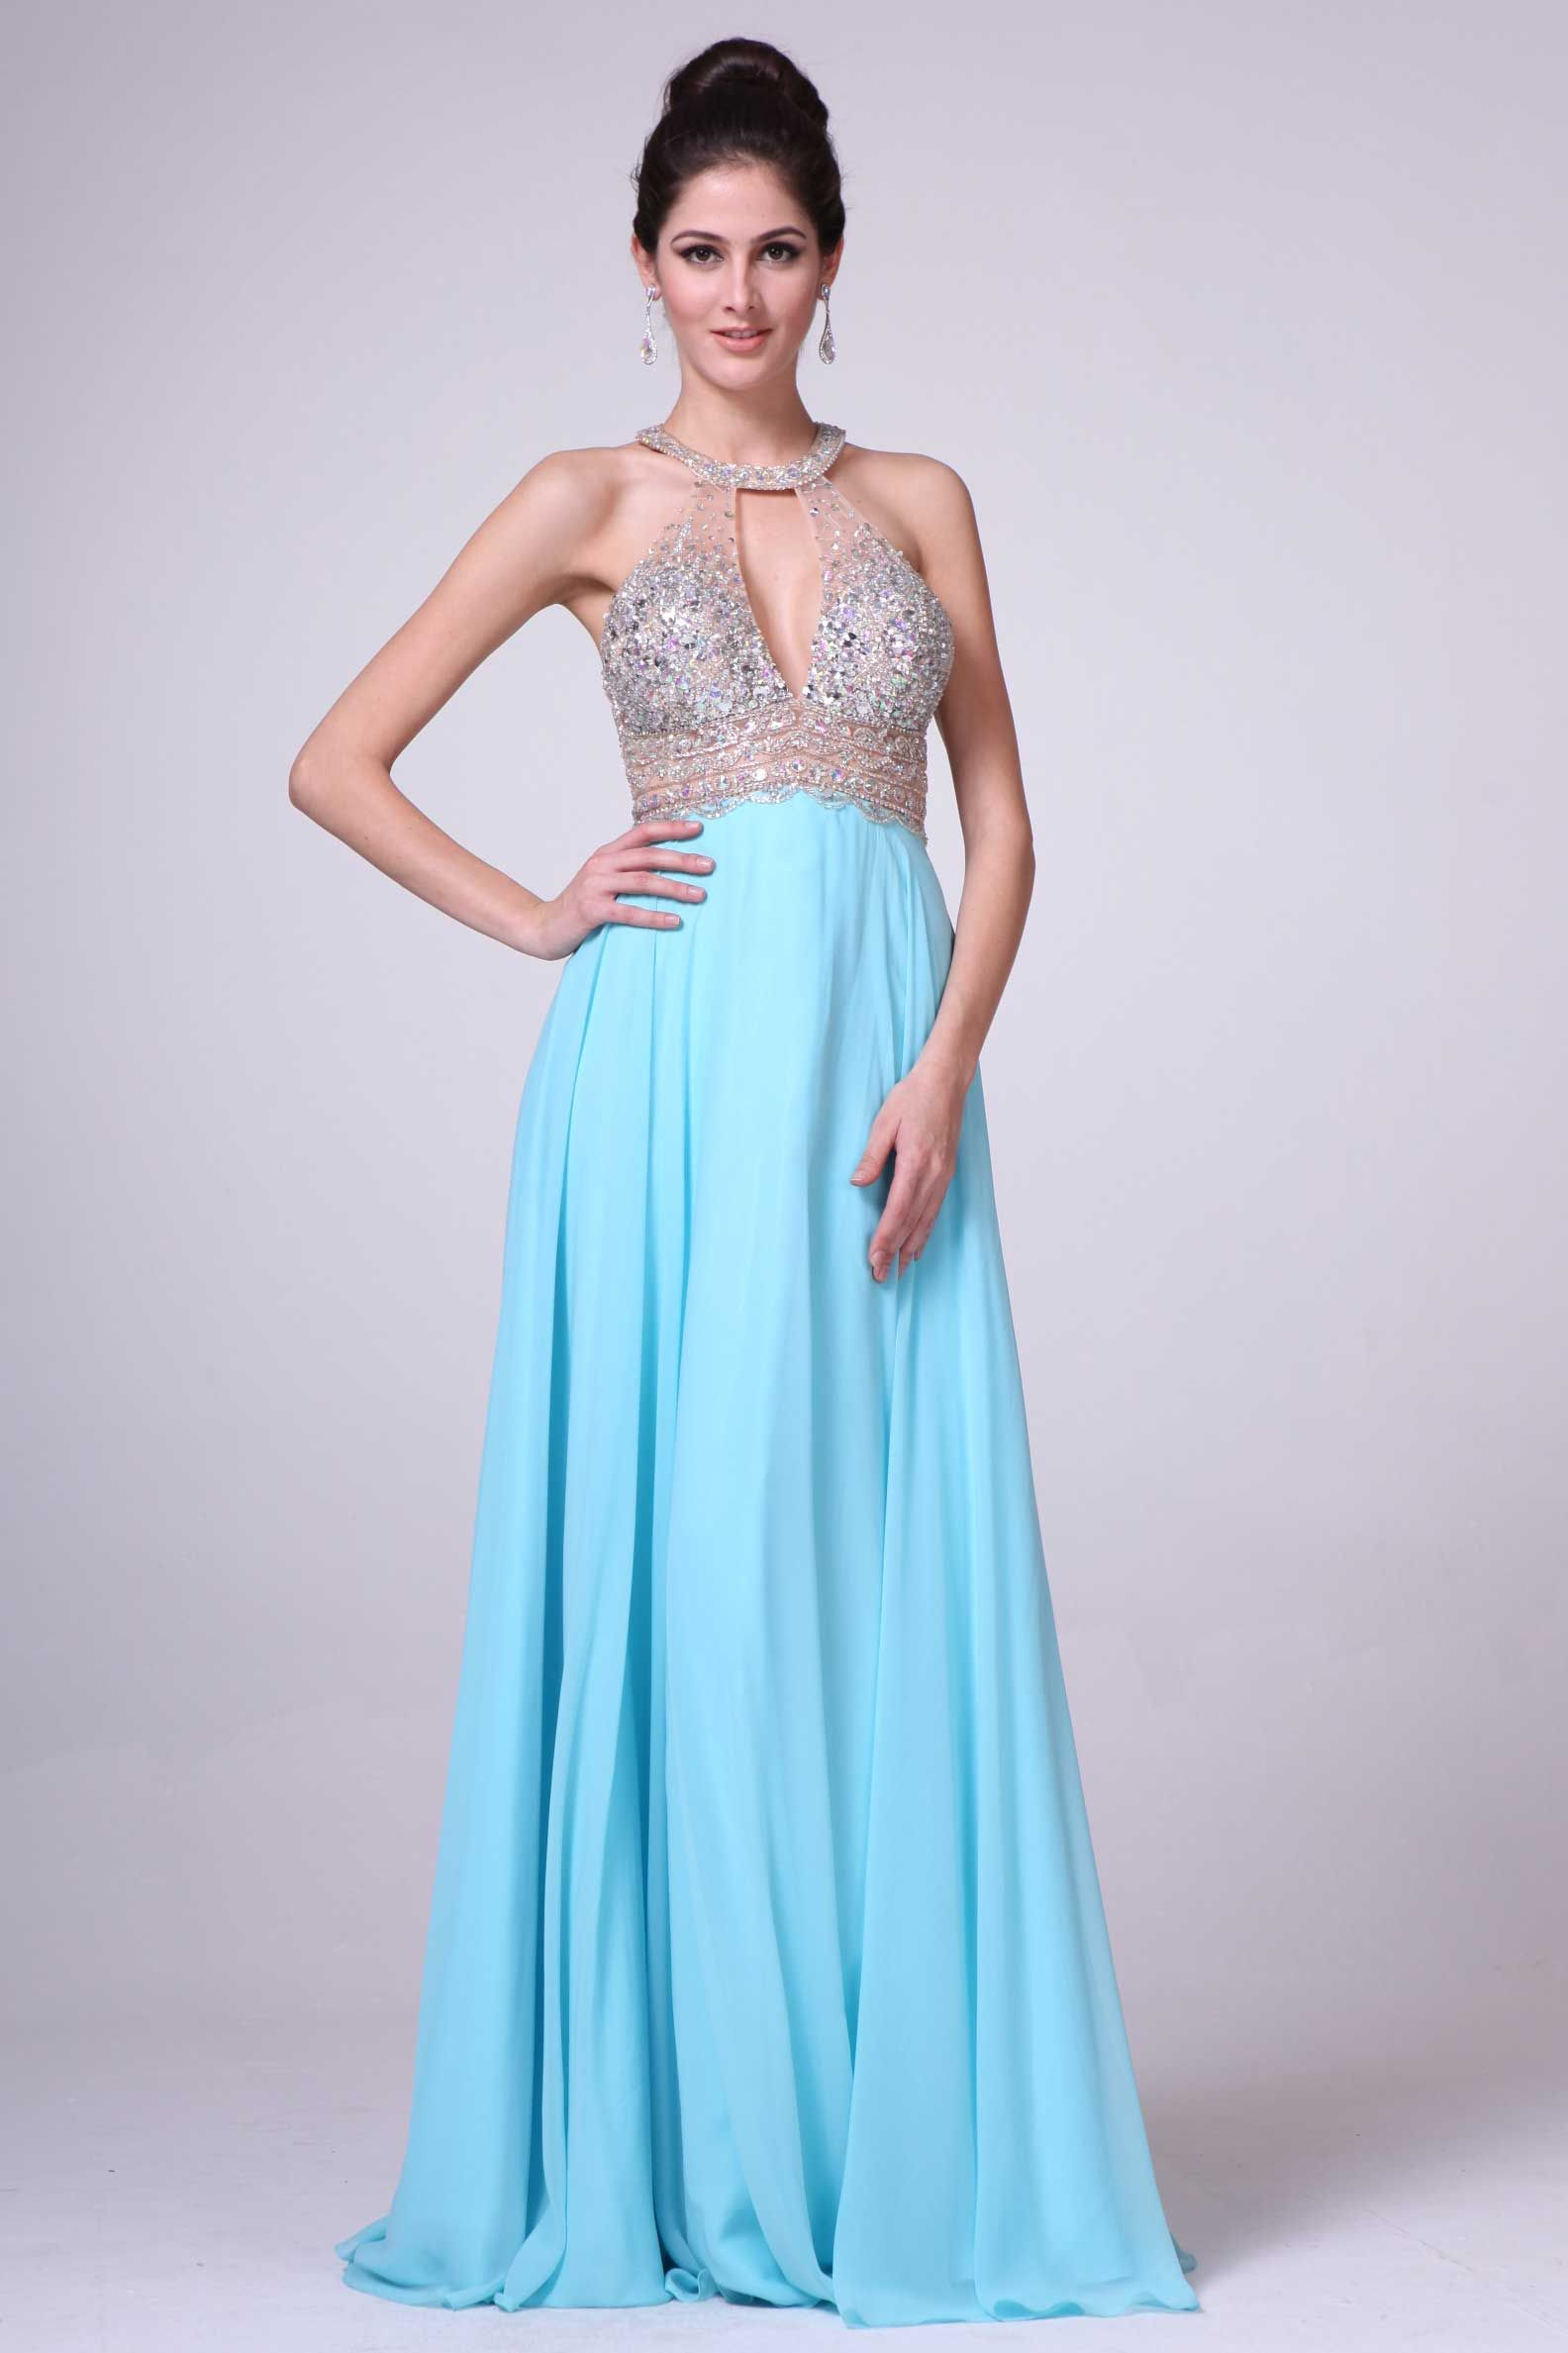 Floor Length Prom Gown CD8736 Floor Length A-Line Prom or Evening ...